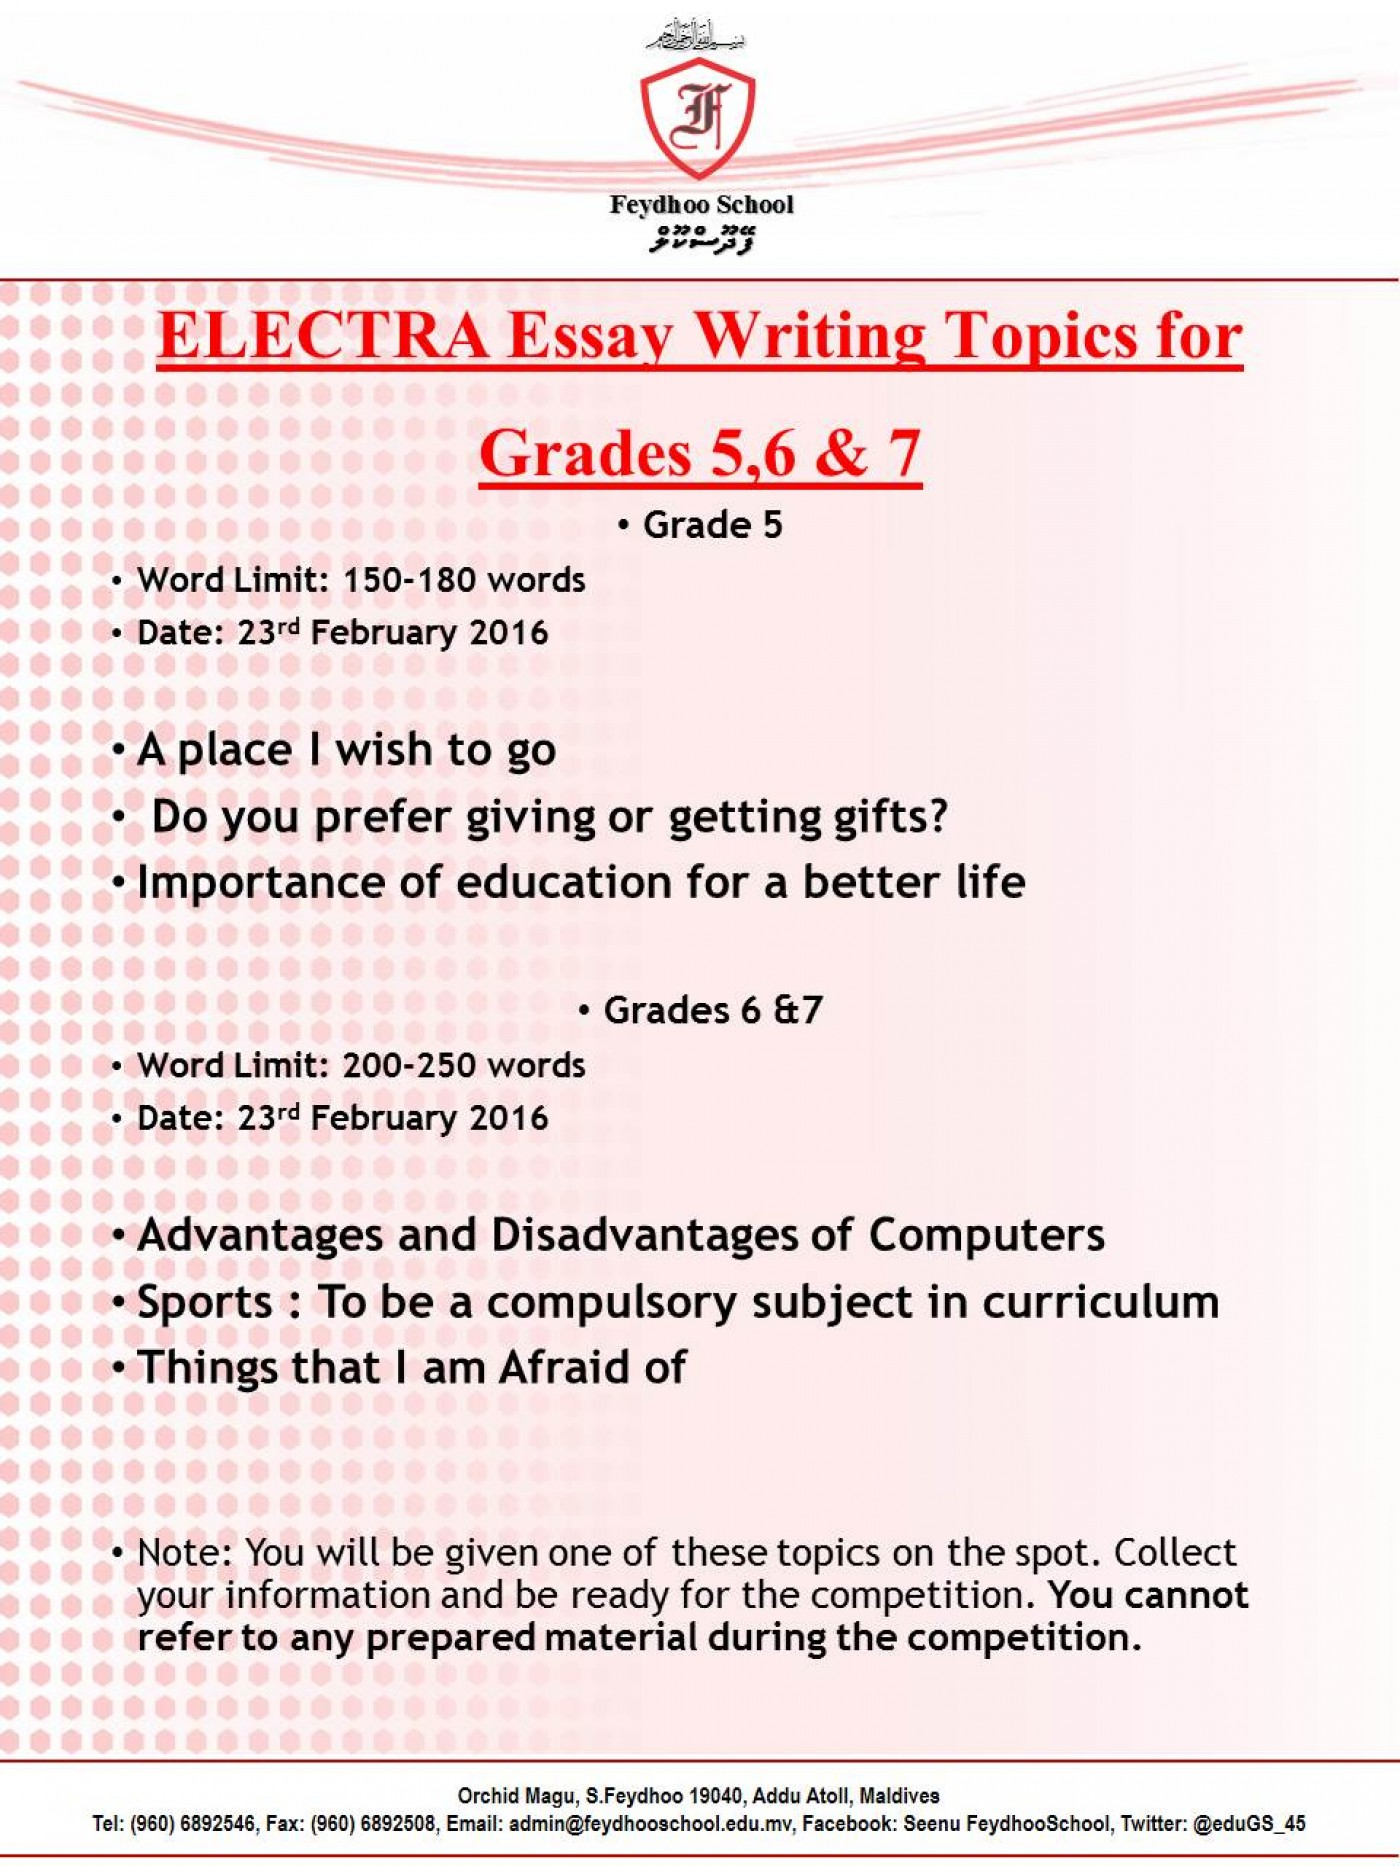 003 Essay Example Topics For Grade Marvelous 5 Informative 5th Icse Writing Students 1400